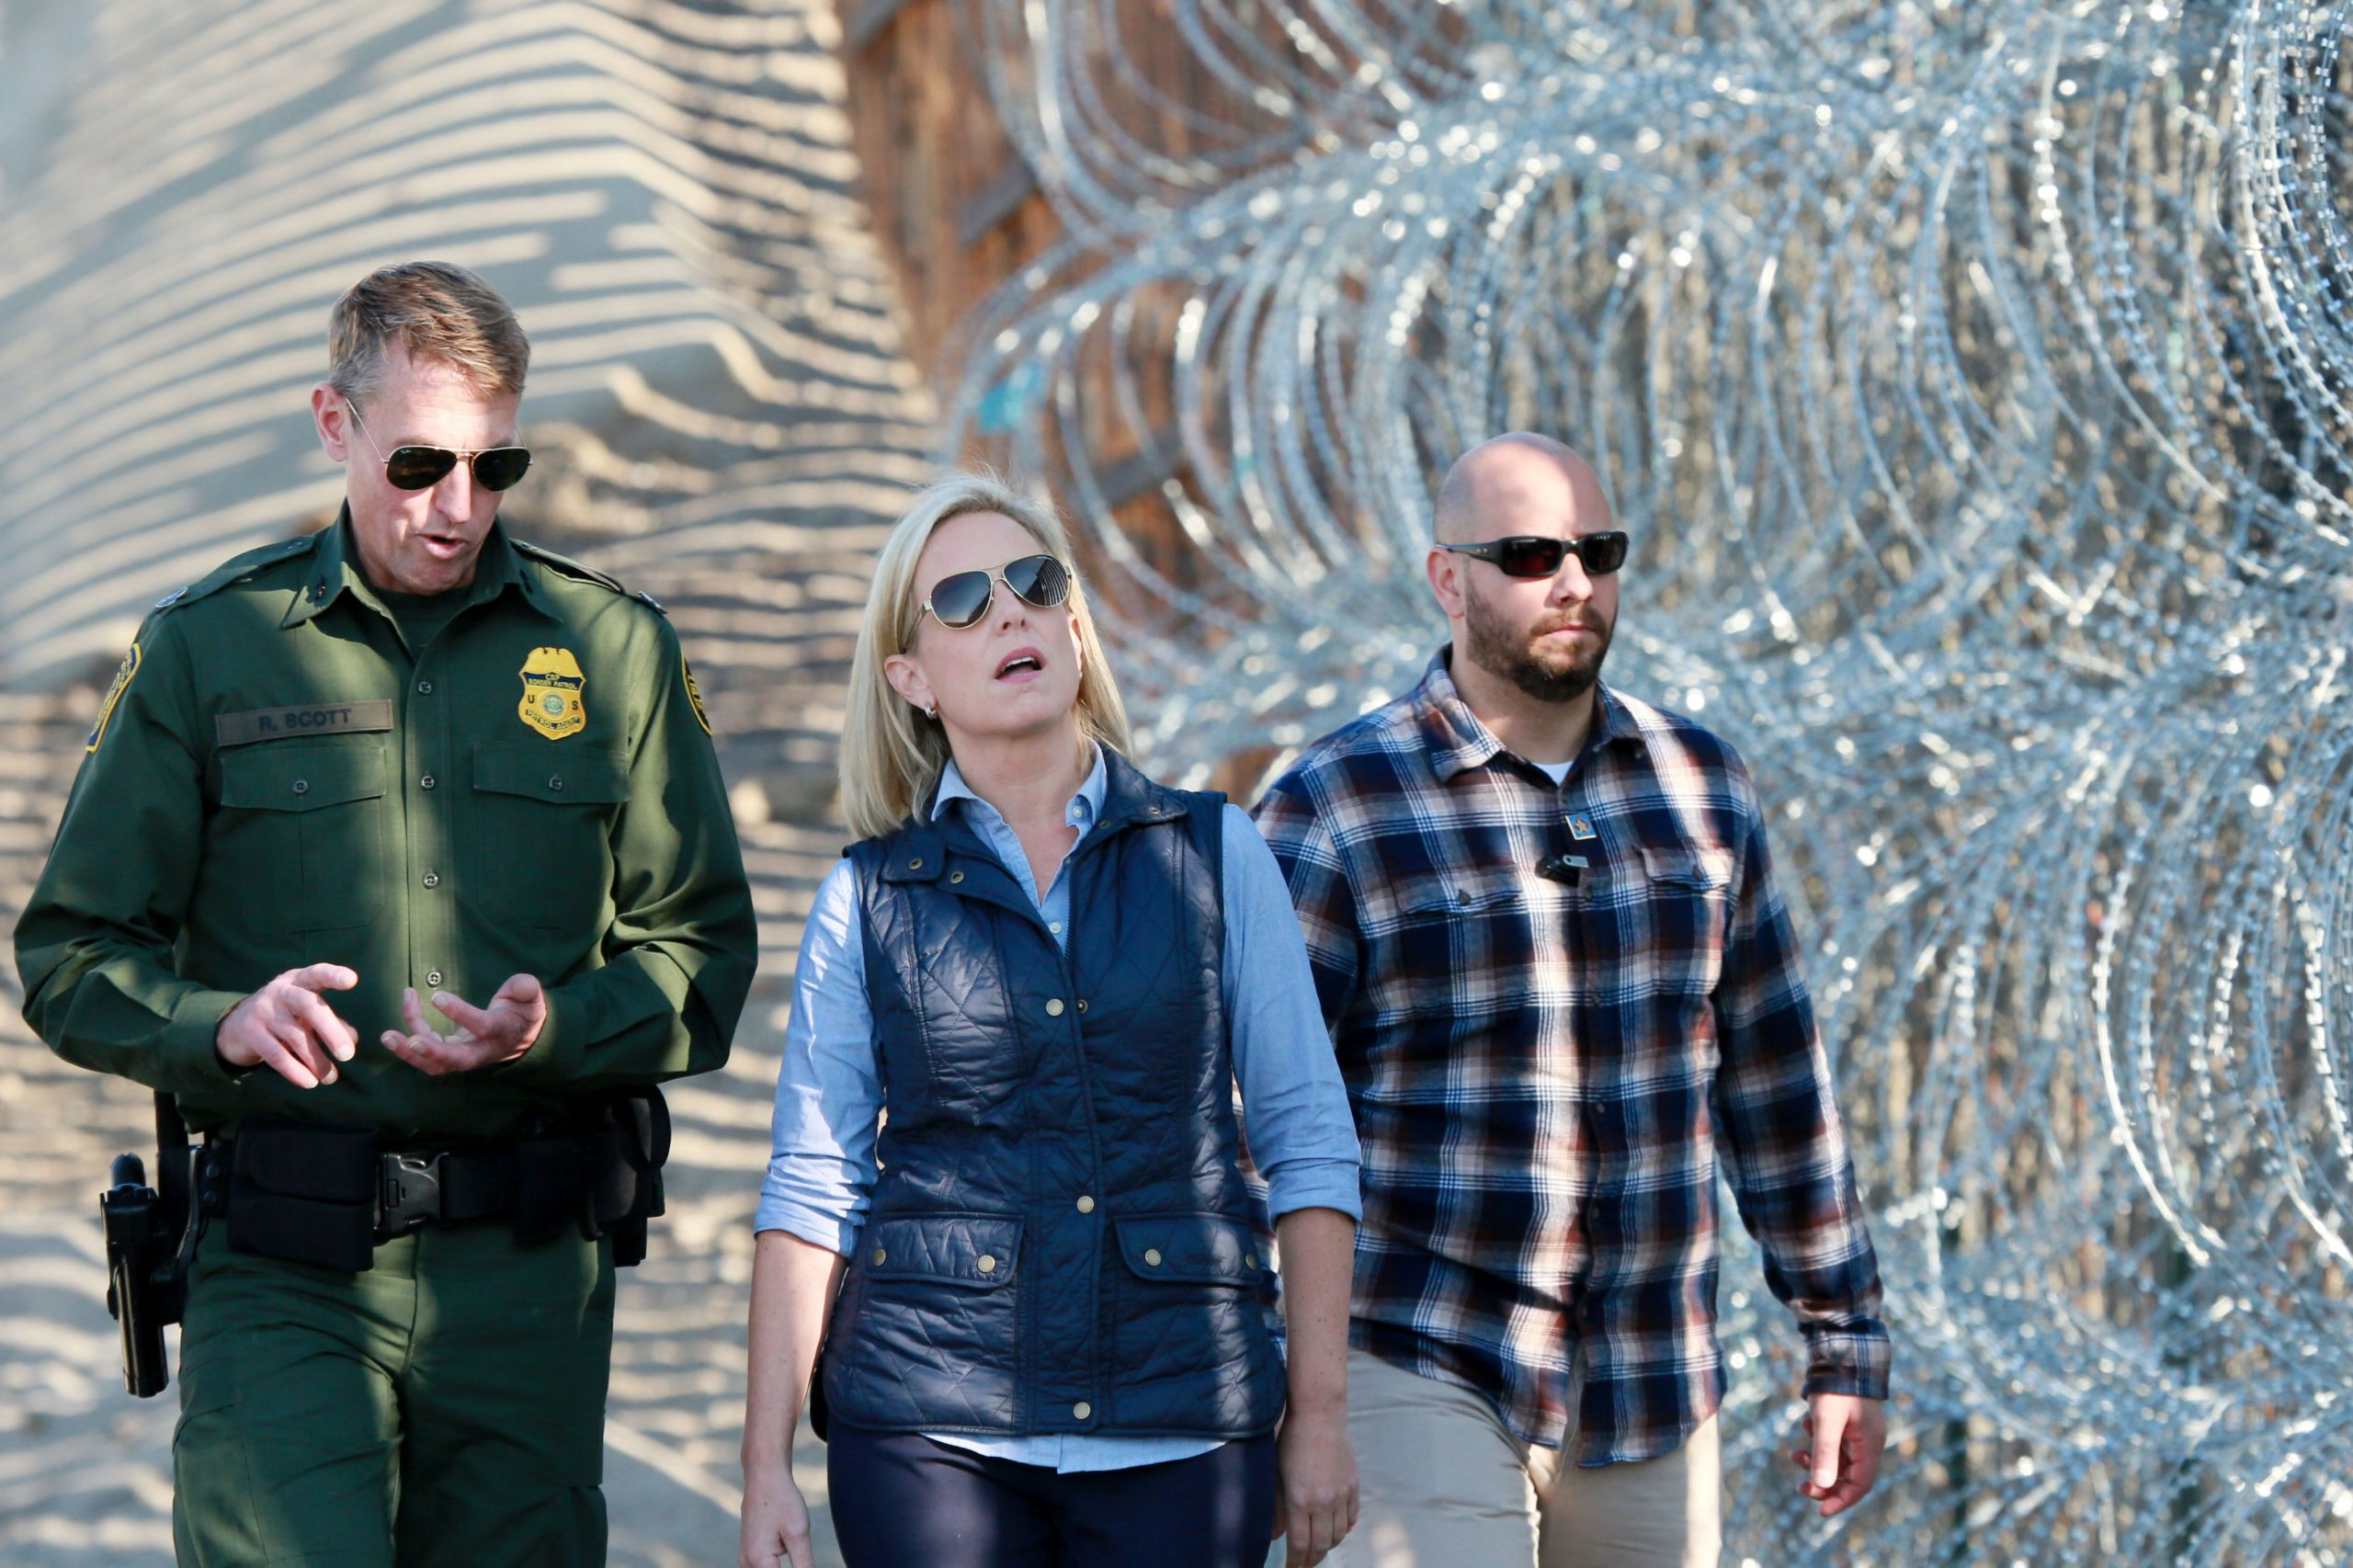 Kirstjen M. Nielsen, Secretary of the Department of Homeland Security, tours the border area with San Diego Section Border Patrol Chief Rodney Scott (L) at Borderfield State Park along the United States-Mexico Border fence in San Ysidro, California on November 20, 2018. (Photo credit should read SANDY HUFFAKER/AFP via Getty Images)